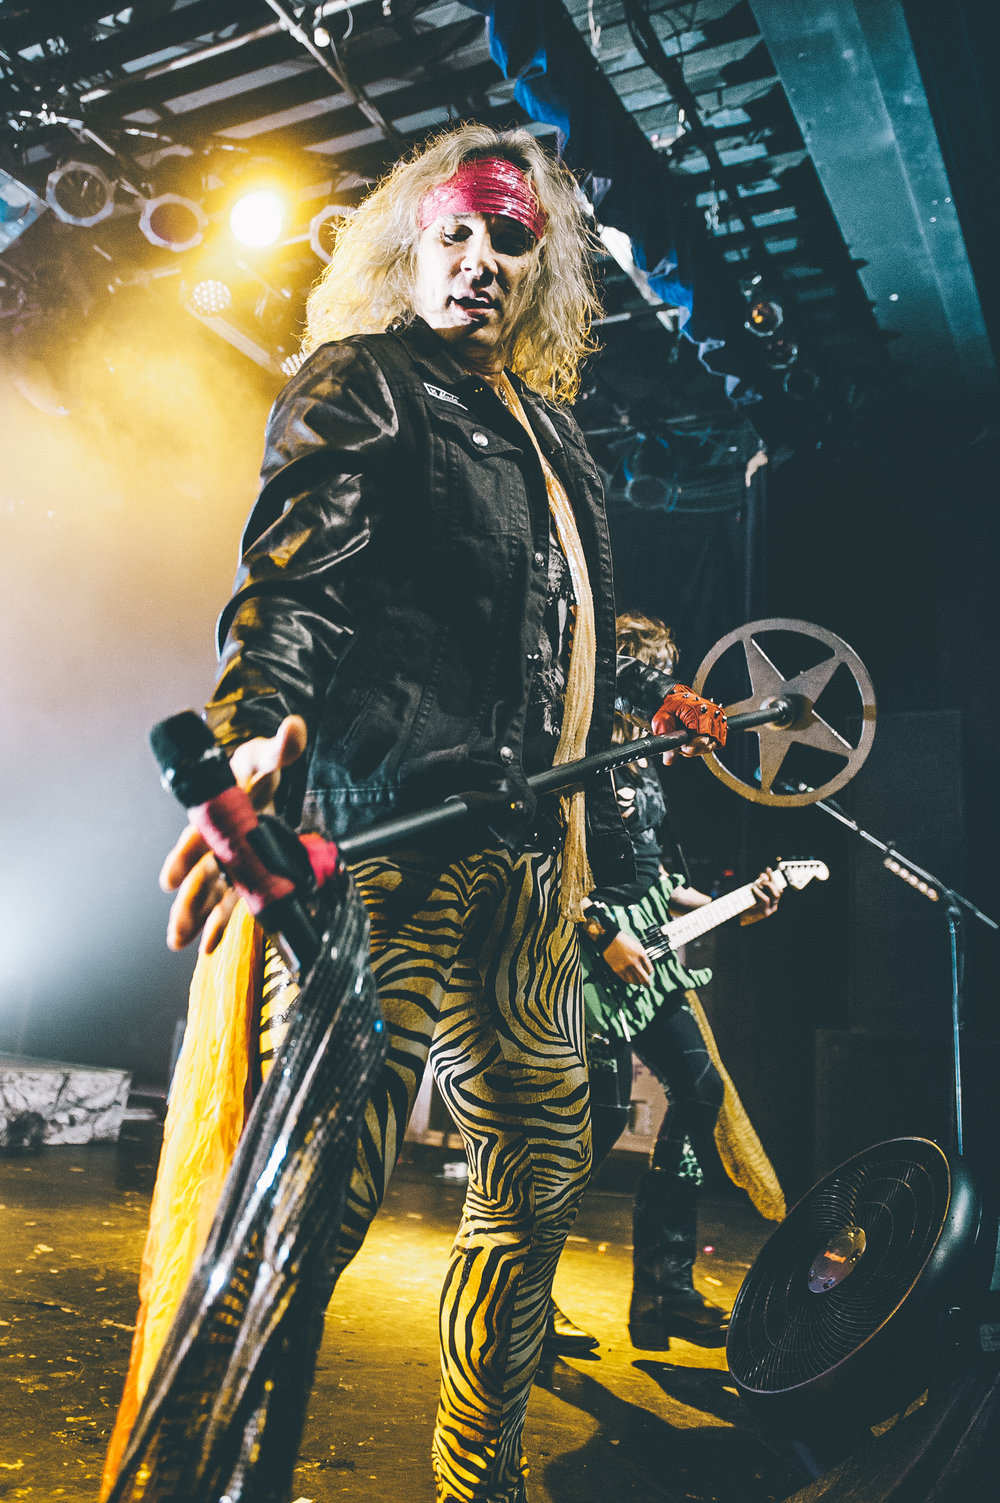 1_Steel_Panther_Commodore_Ballroom-Timothy_Nguyen-20170120 (13 of 34).jpg